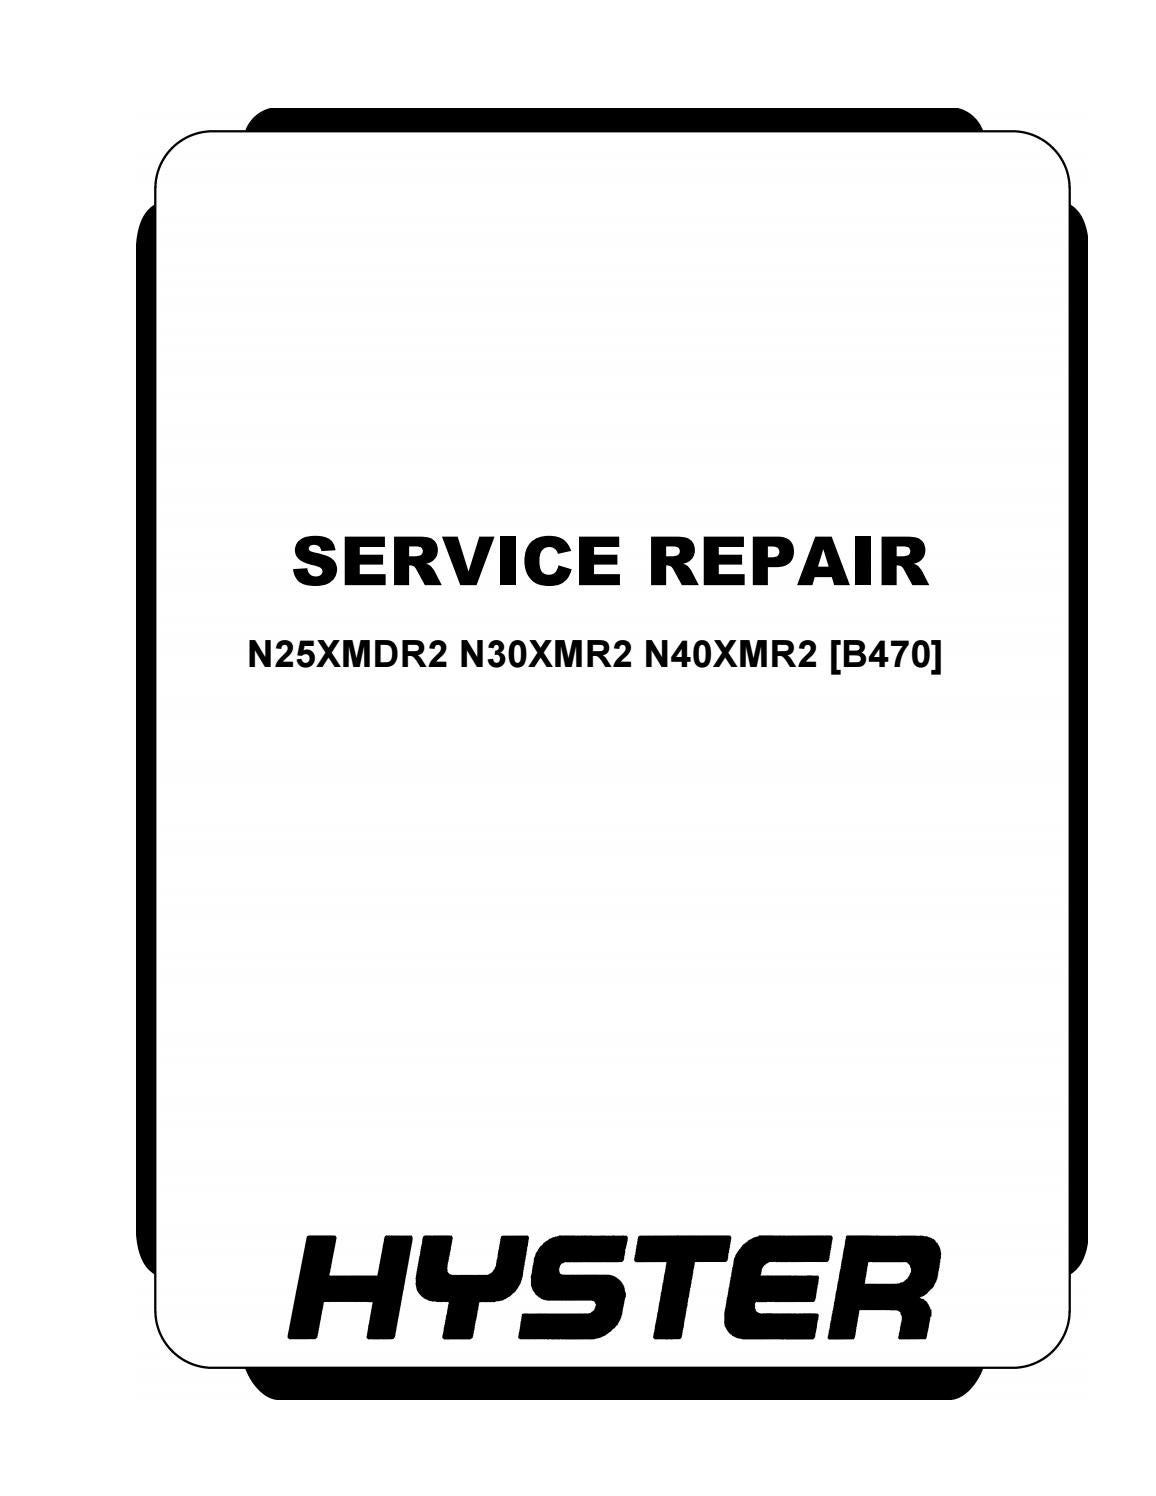 Hyster B470 (N40XMR2) Forklift Service Repair Manual by